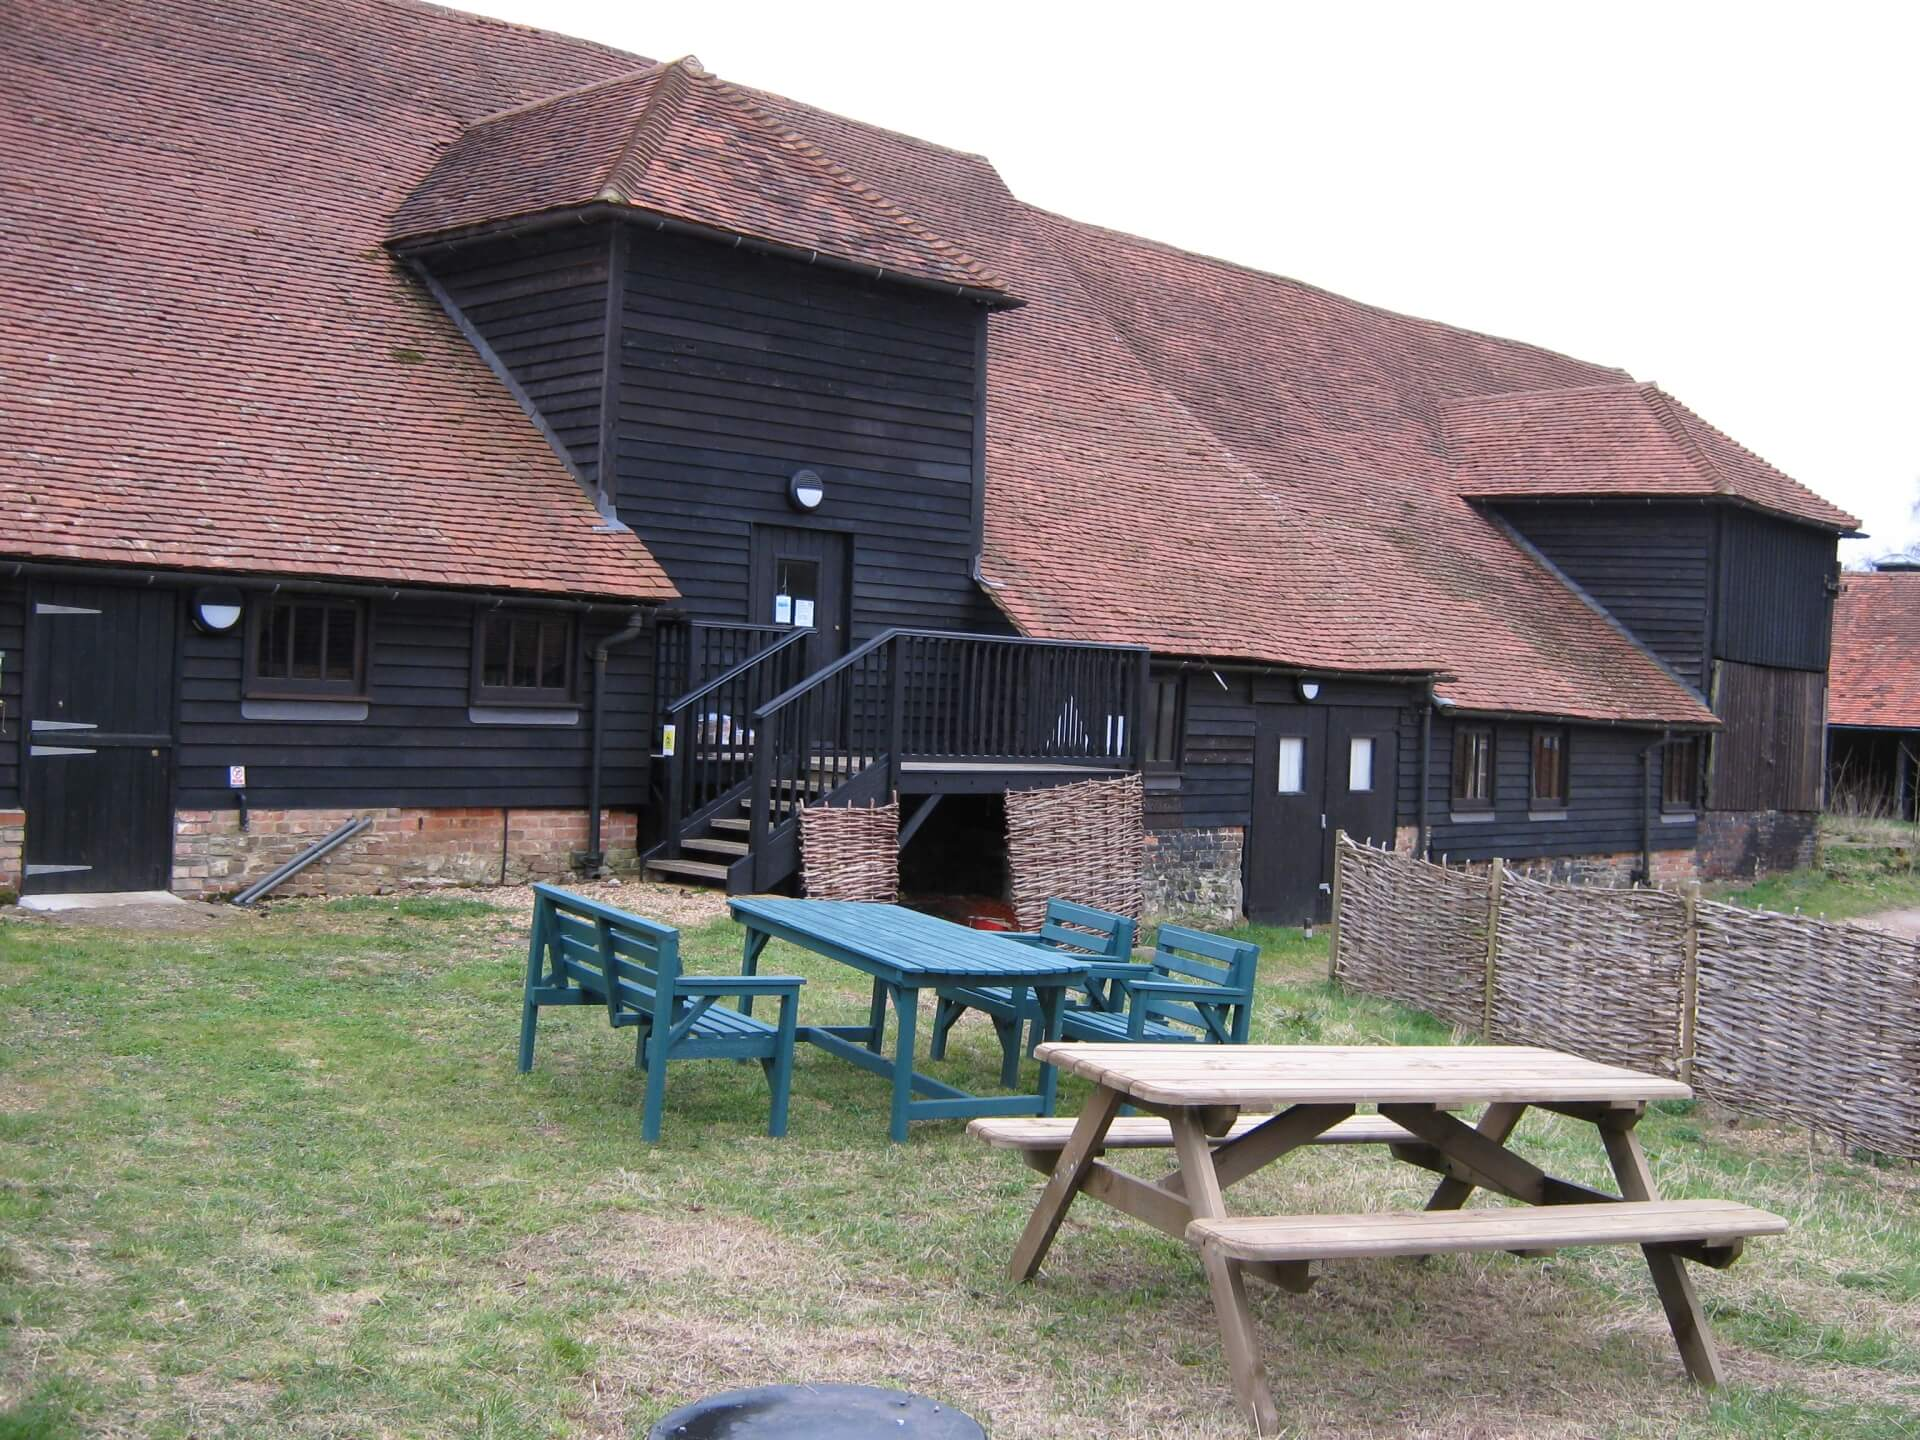 YHA Puttenham Camping Barn remains open.